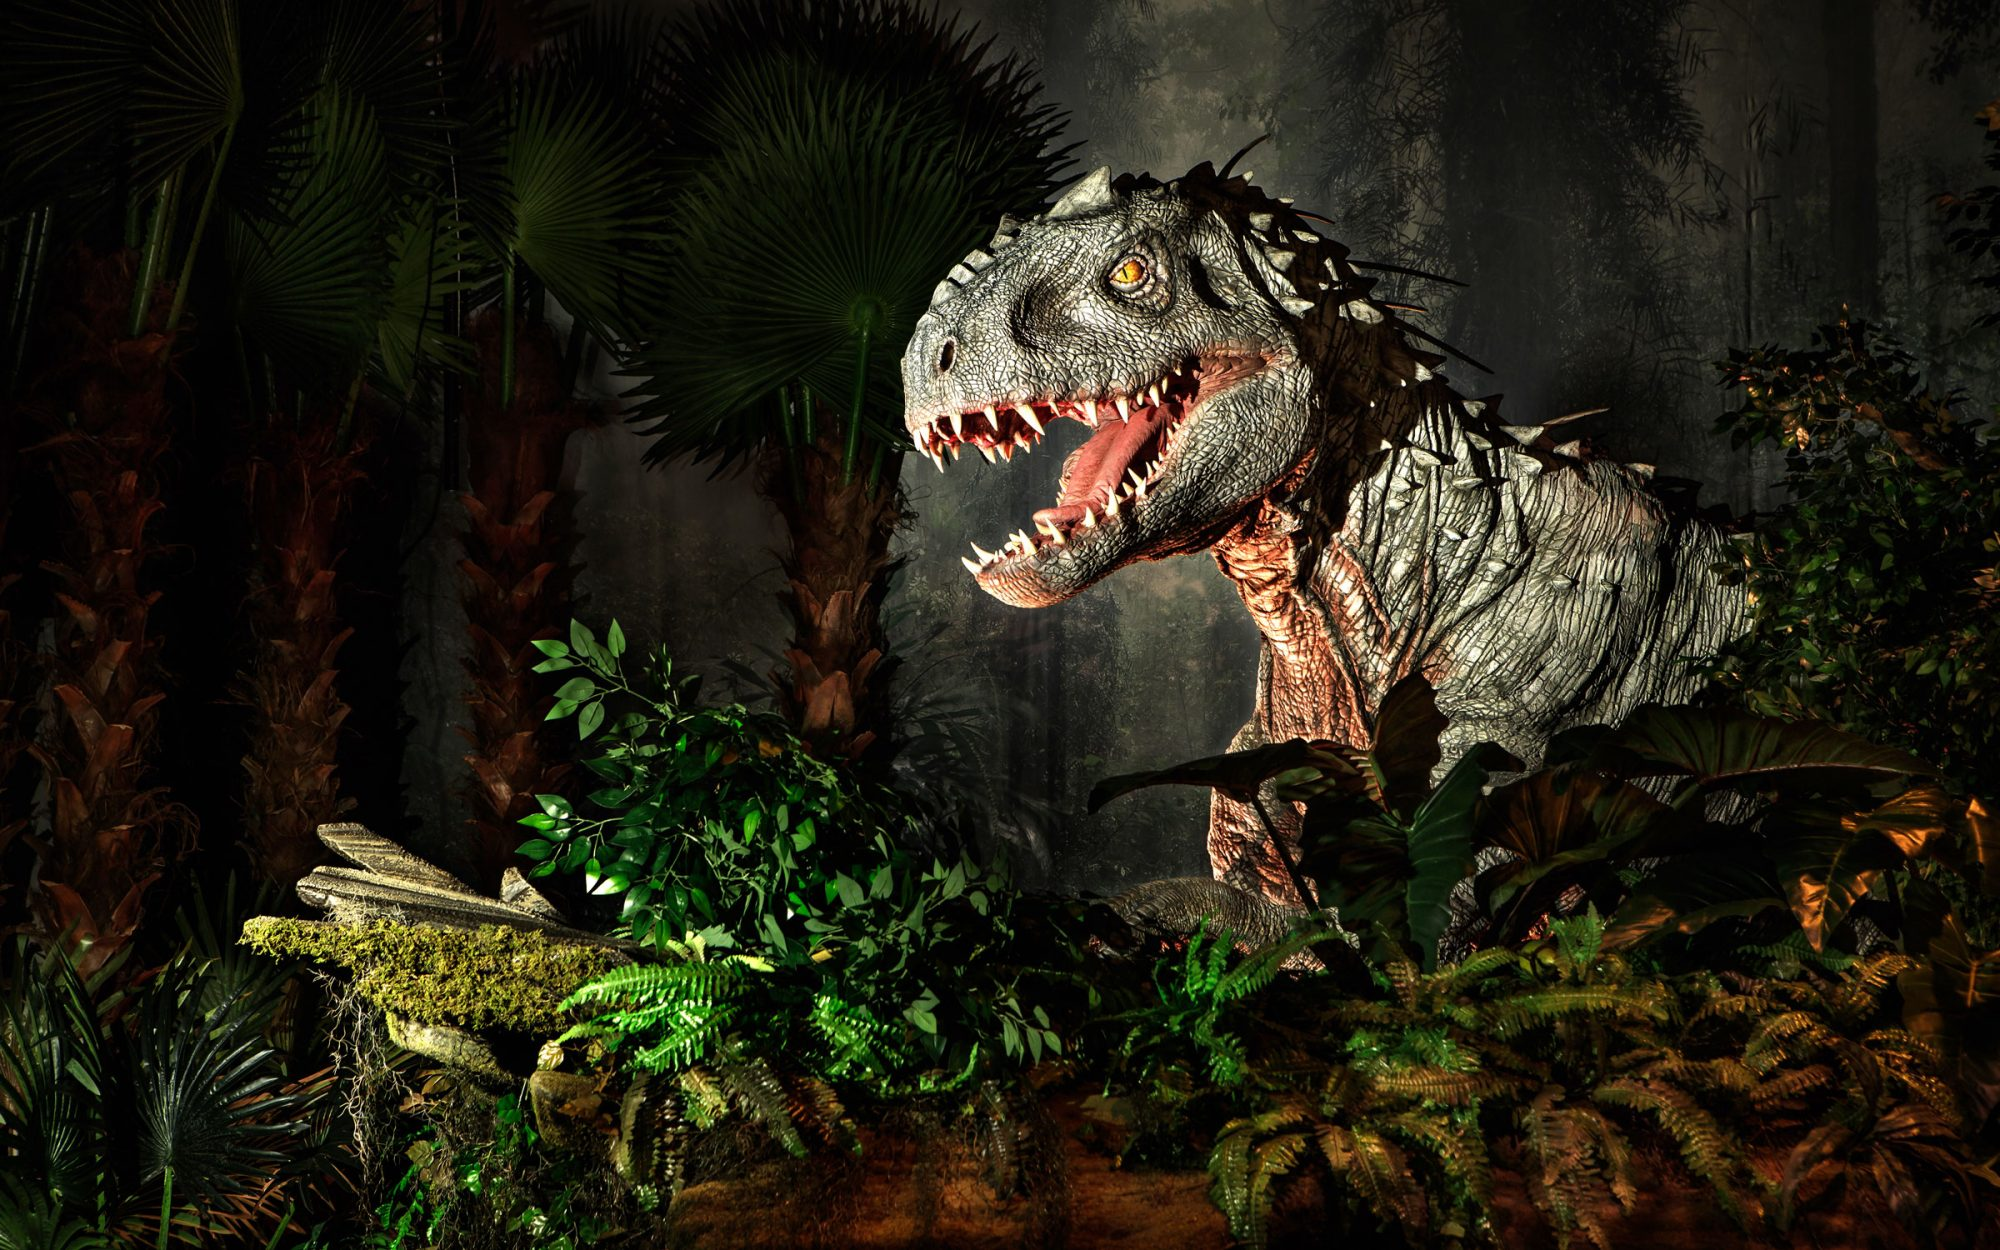 Walk With Dinosaurs in New Jurassic World Experience